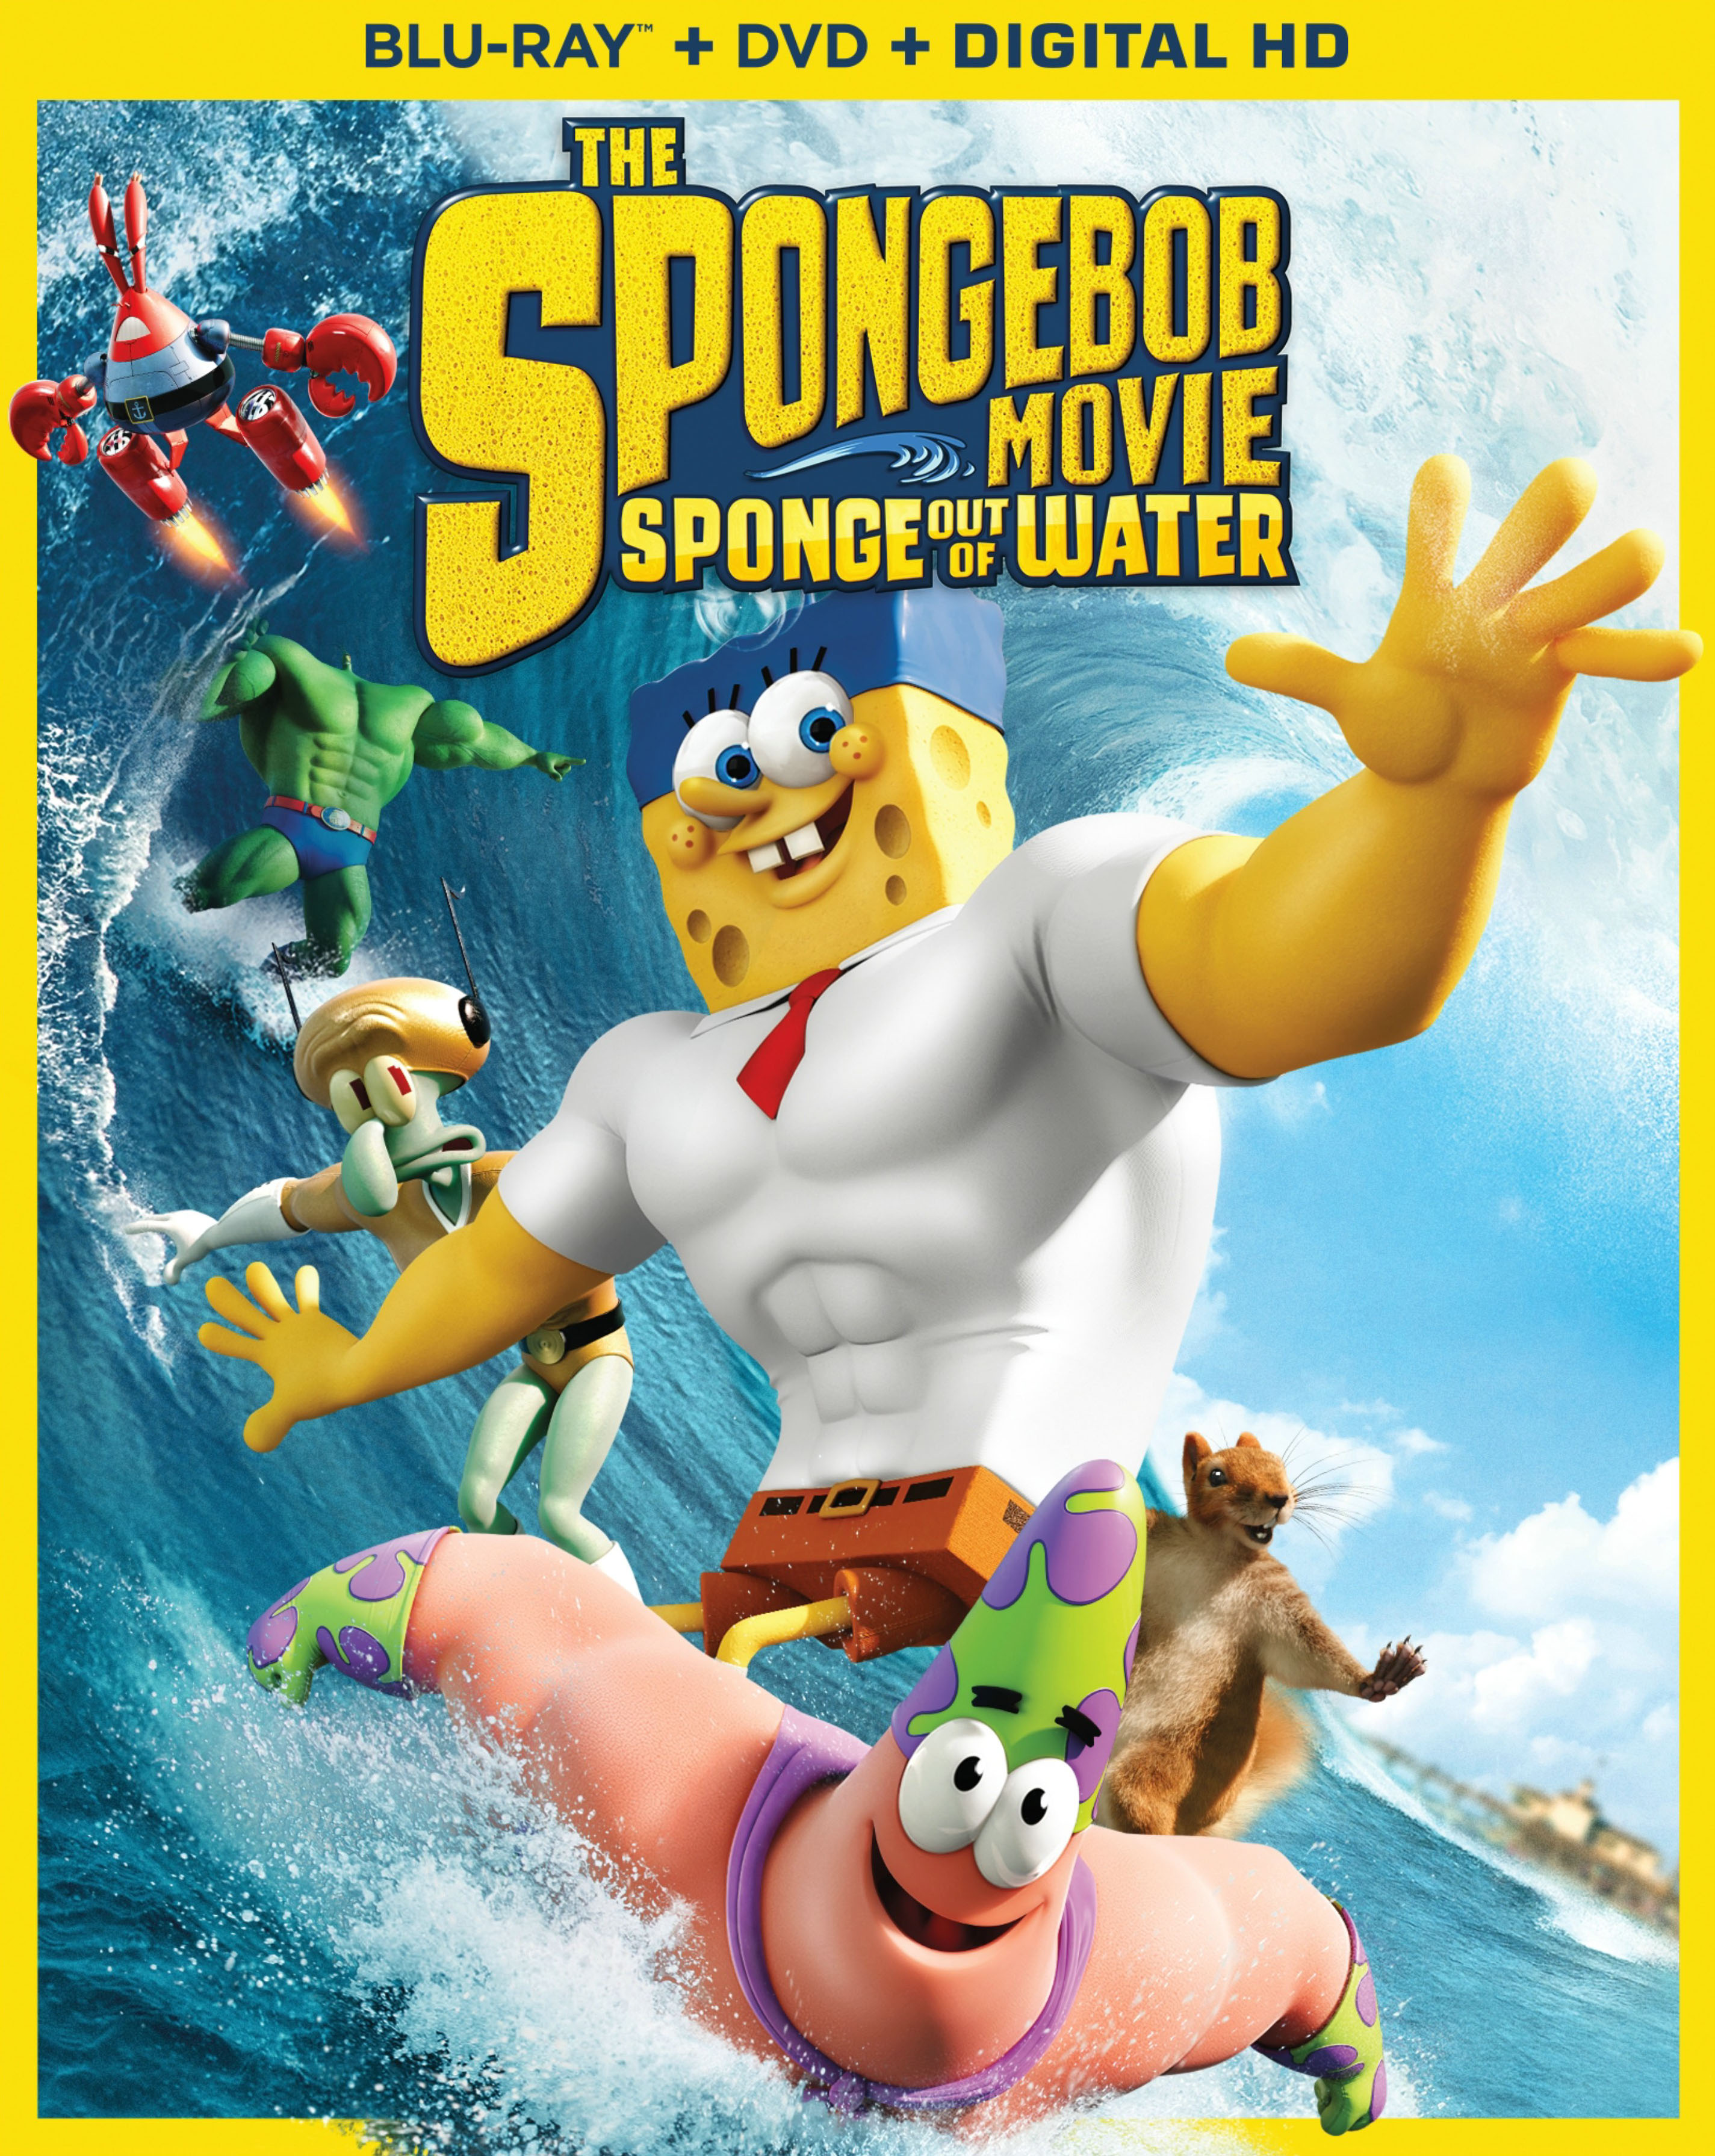 When Does The Spongebob Movie Come Out In Dvd : spongebob, movie, SpongeBob, Movie:, Sponge, Water, Discs], [Includes, Digital, Copy], [Blu-ray/DVD], [2015]